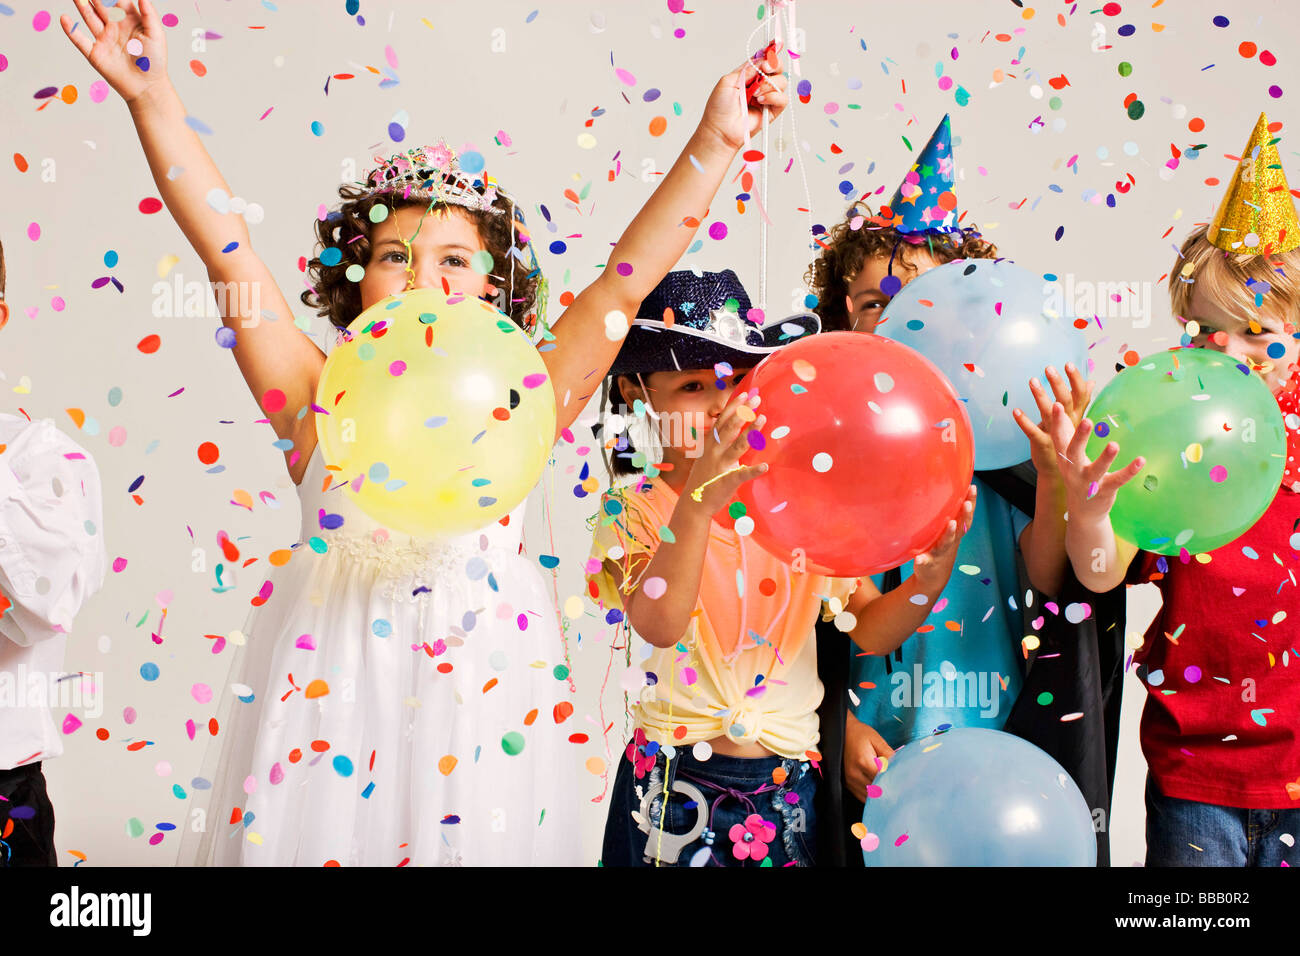 party kids blowing balloons - Stock Image